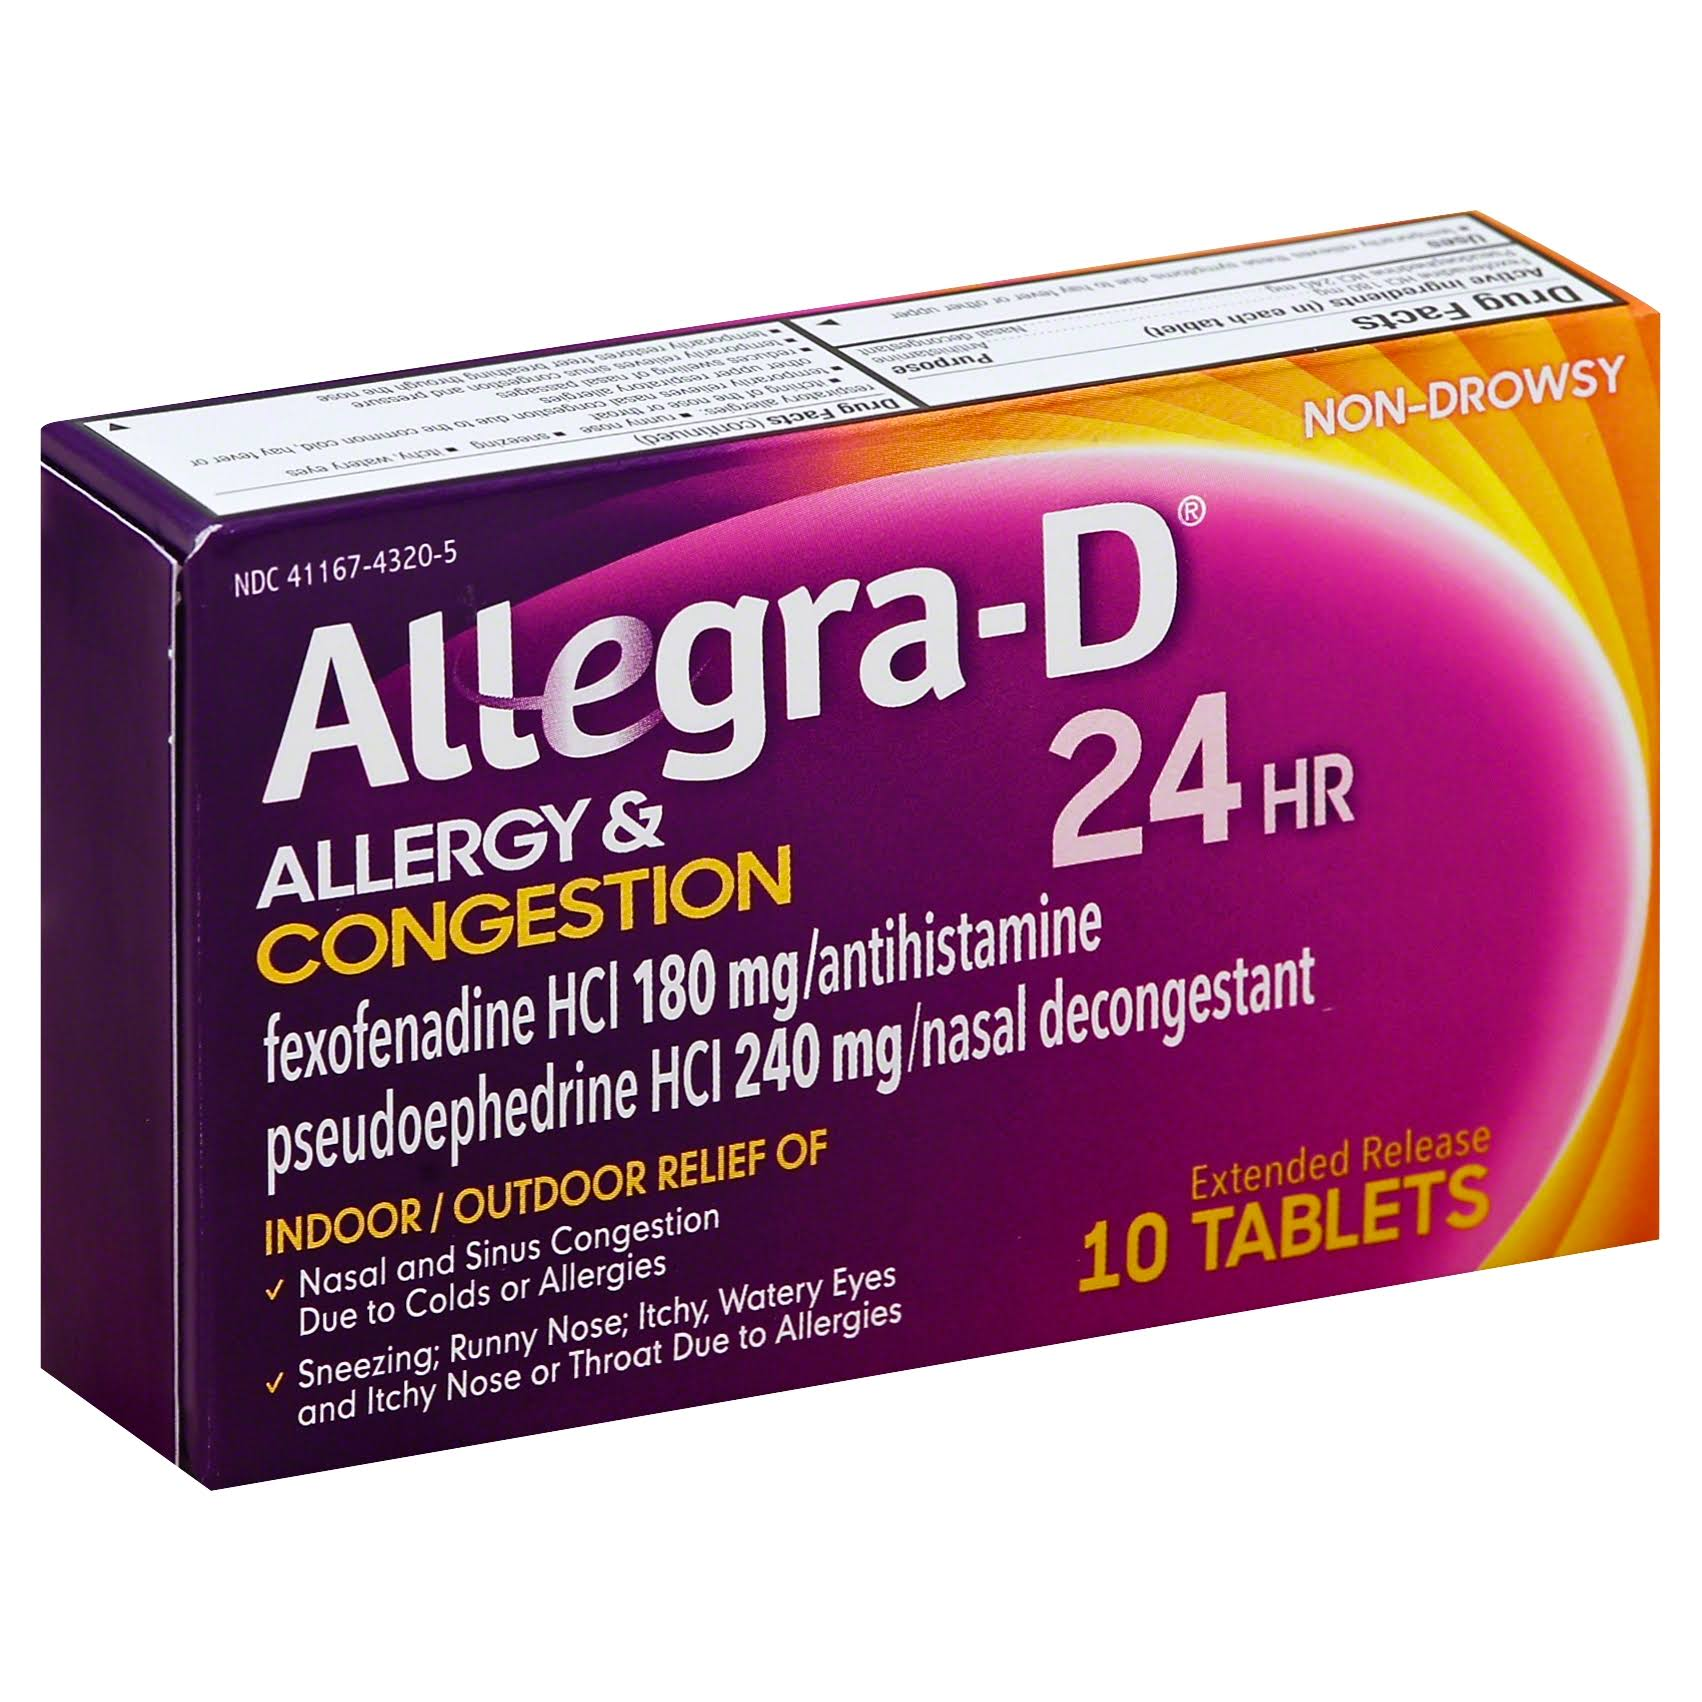 Allegra D Allergy & Congestion, 24 HR, Extended Release Tablets - 10 tablets